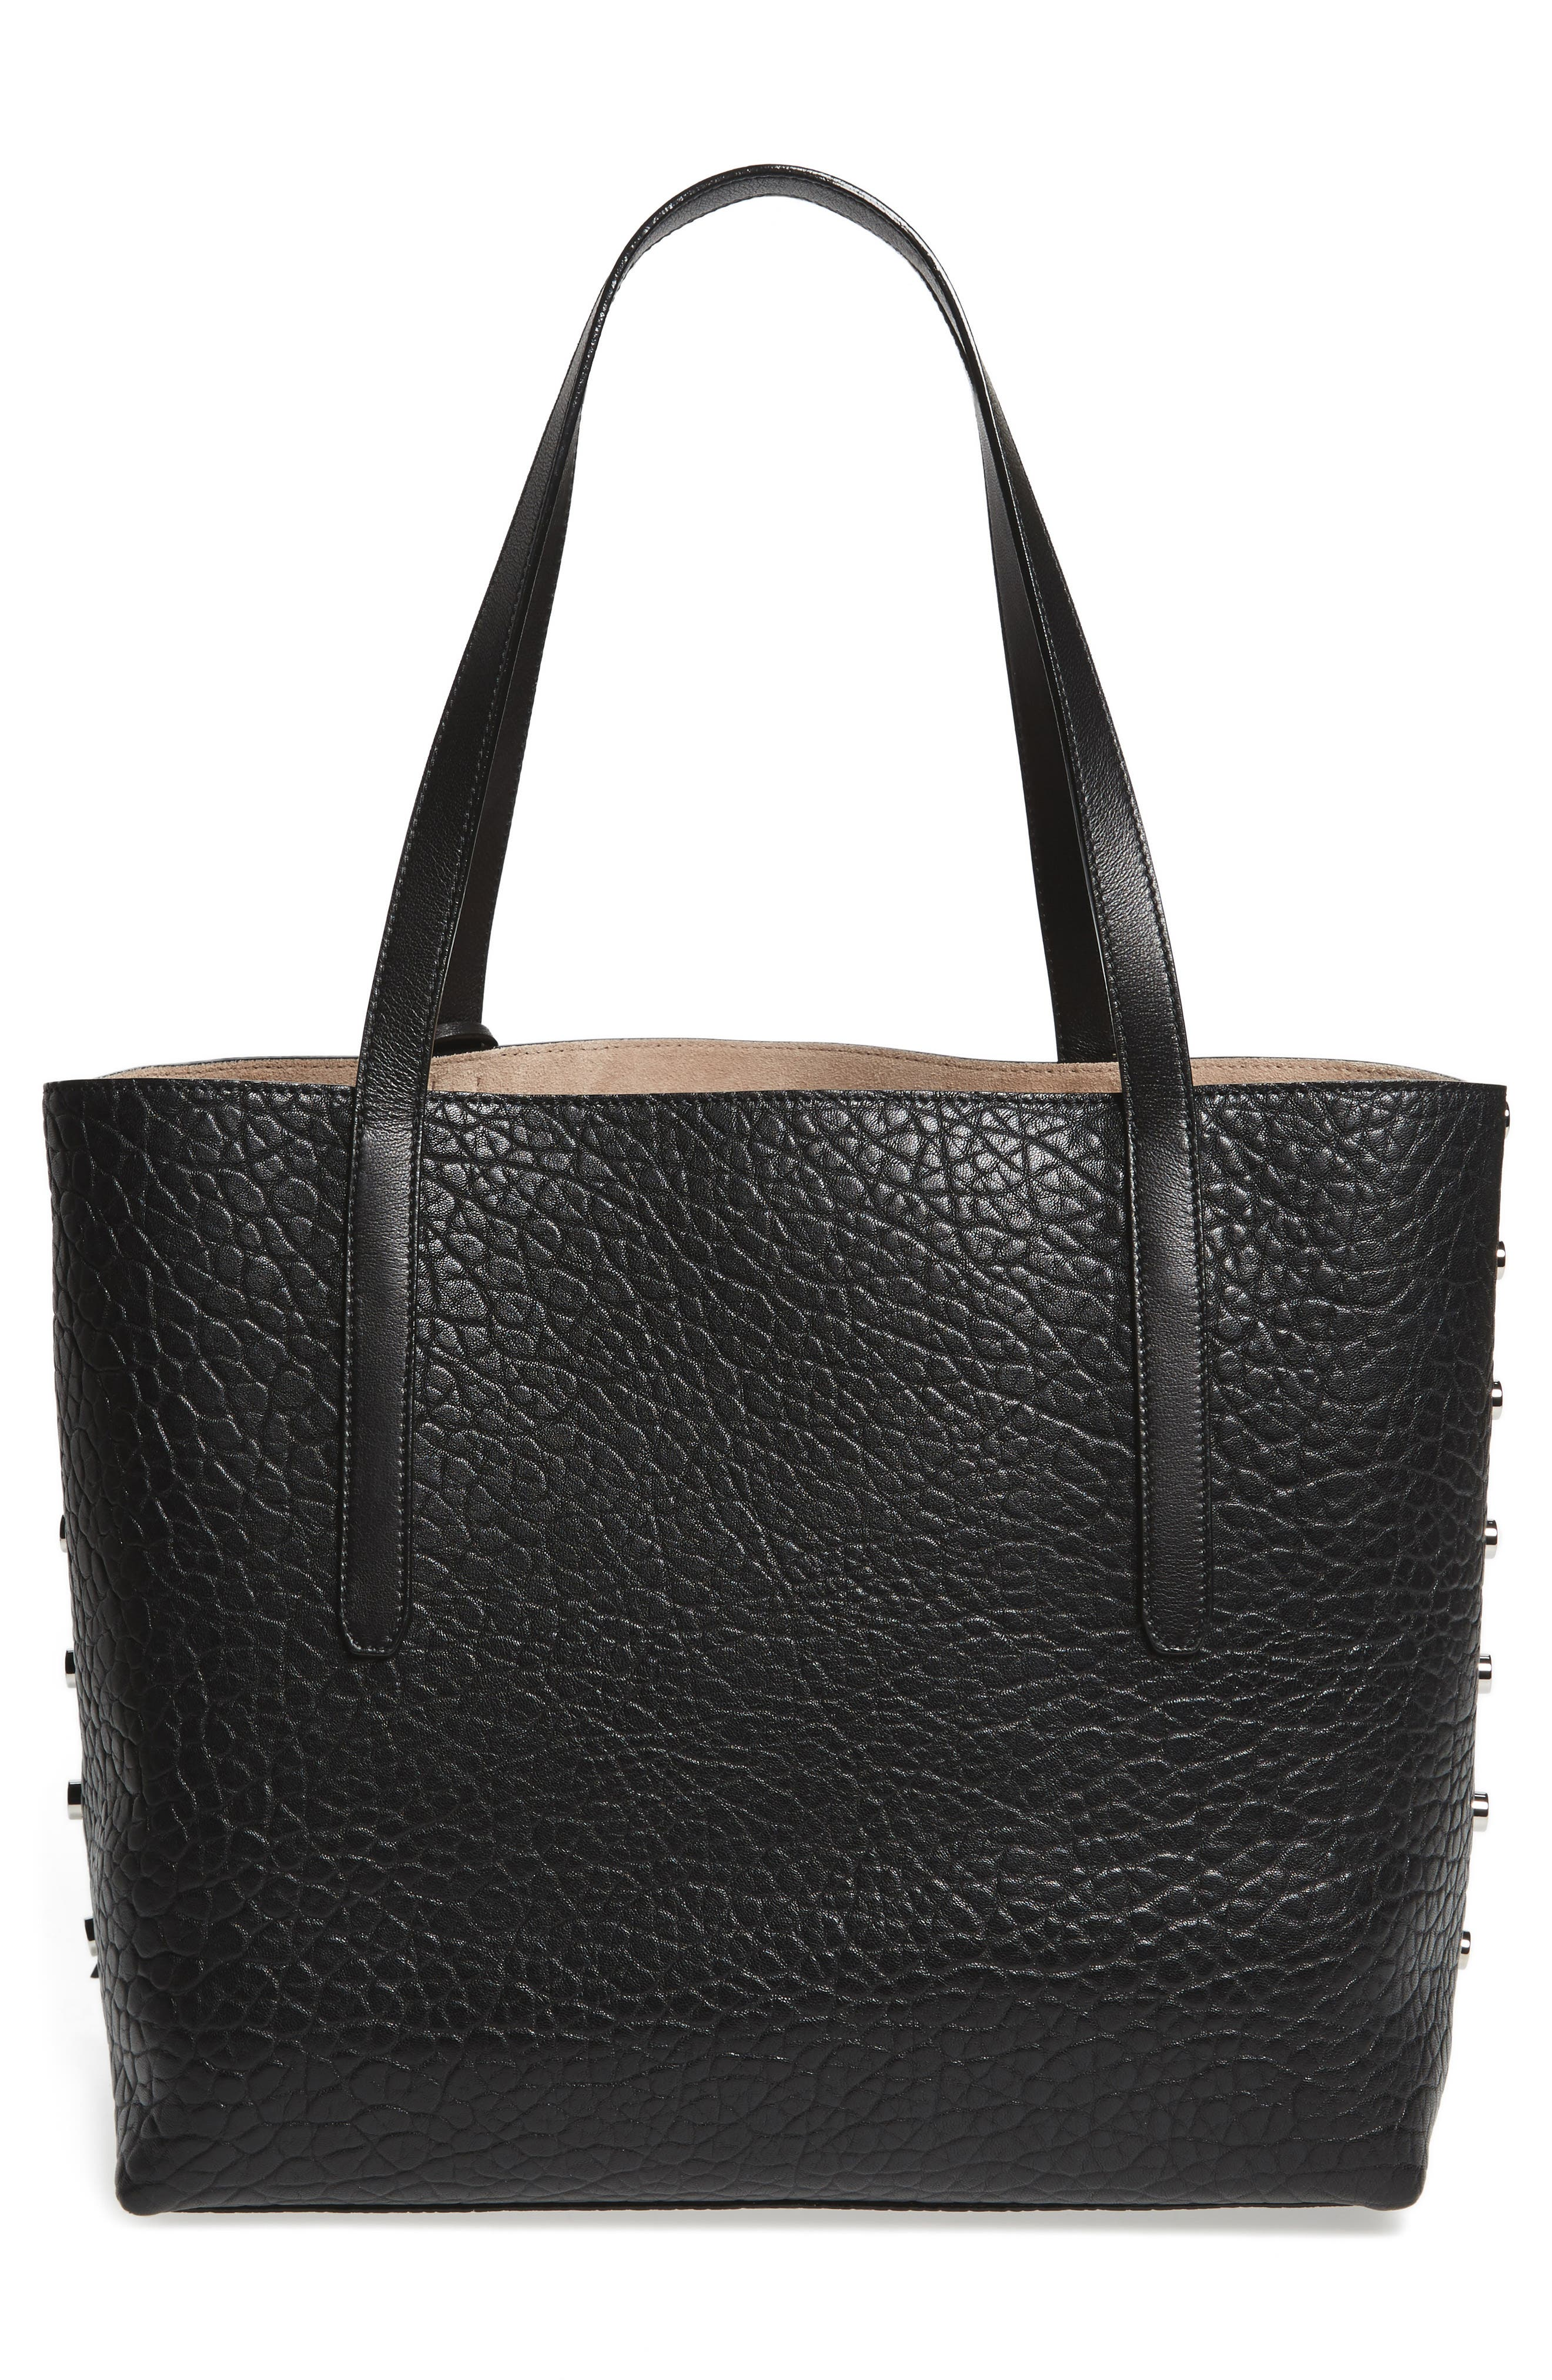 Twist East West Leather Tote,                             Alternate thumbnail 3, color,                             001